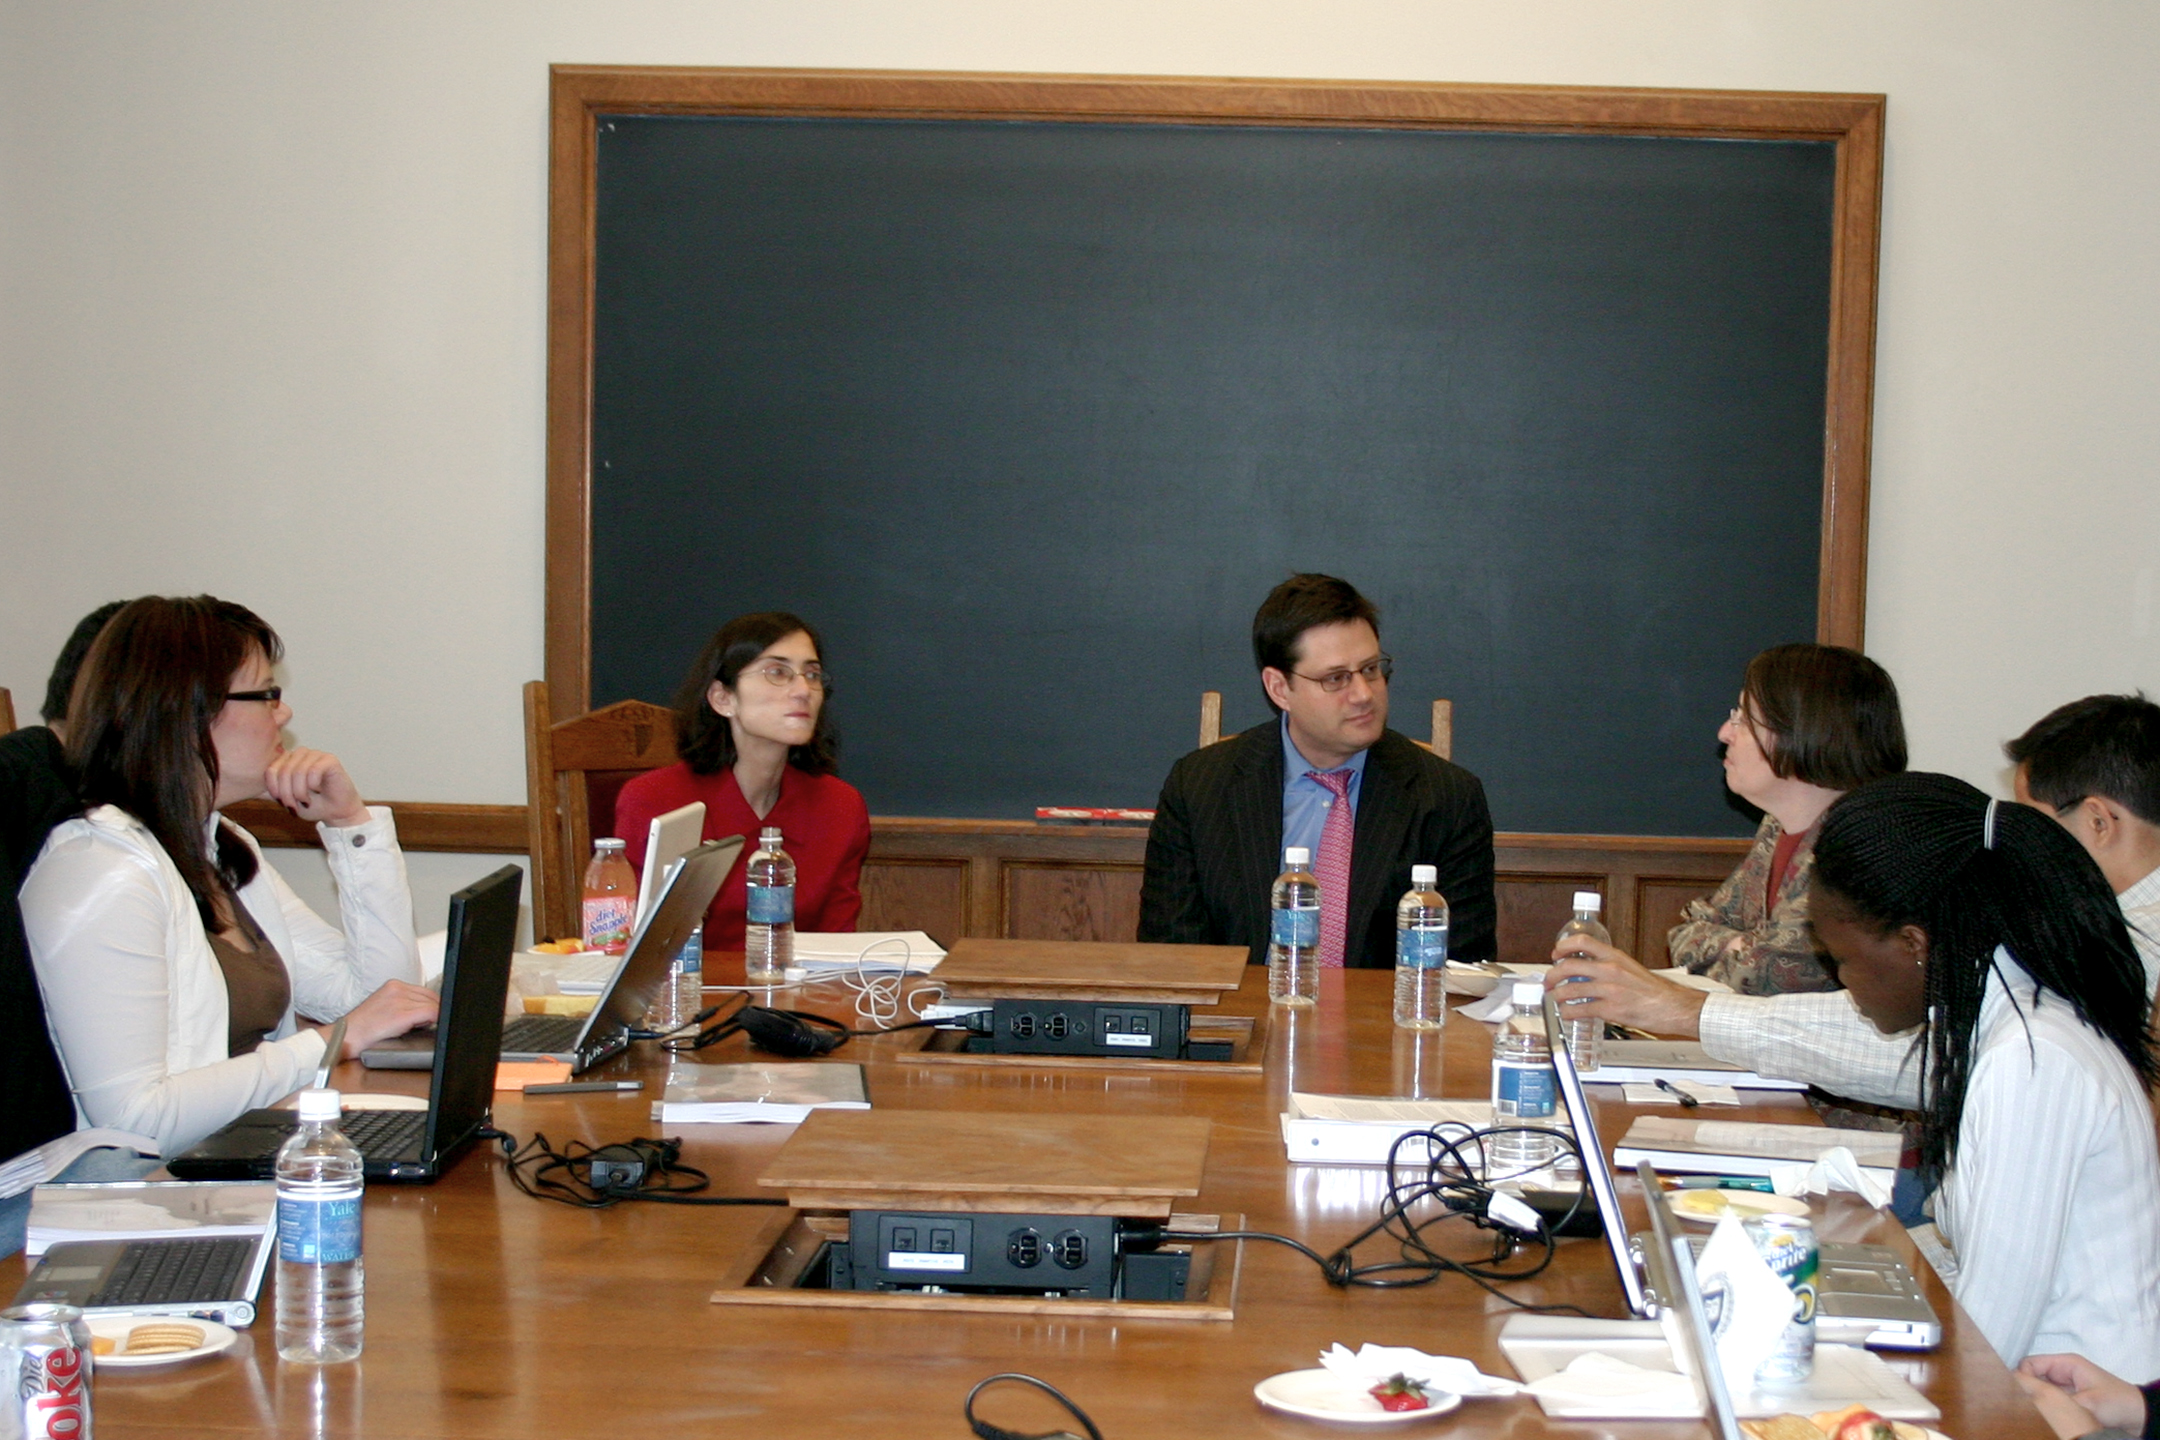 Rosa Testani '88, Stewart Kagan '85, and colloquium class